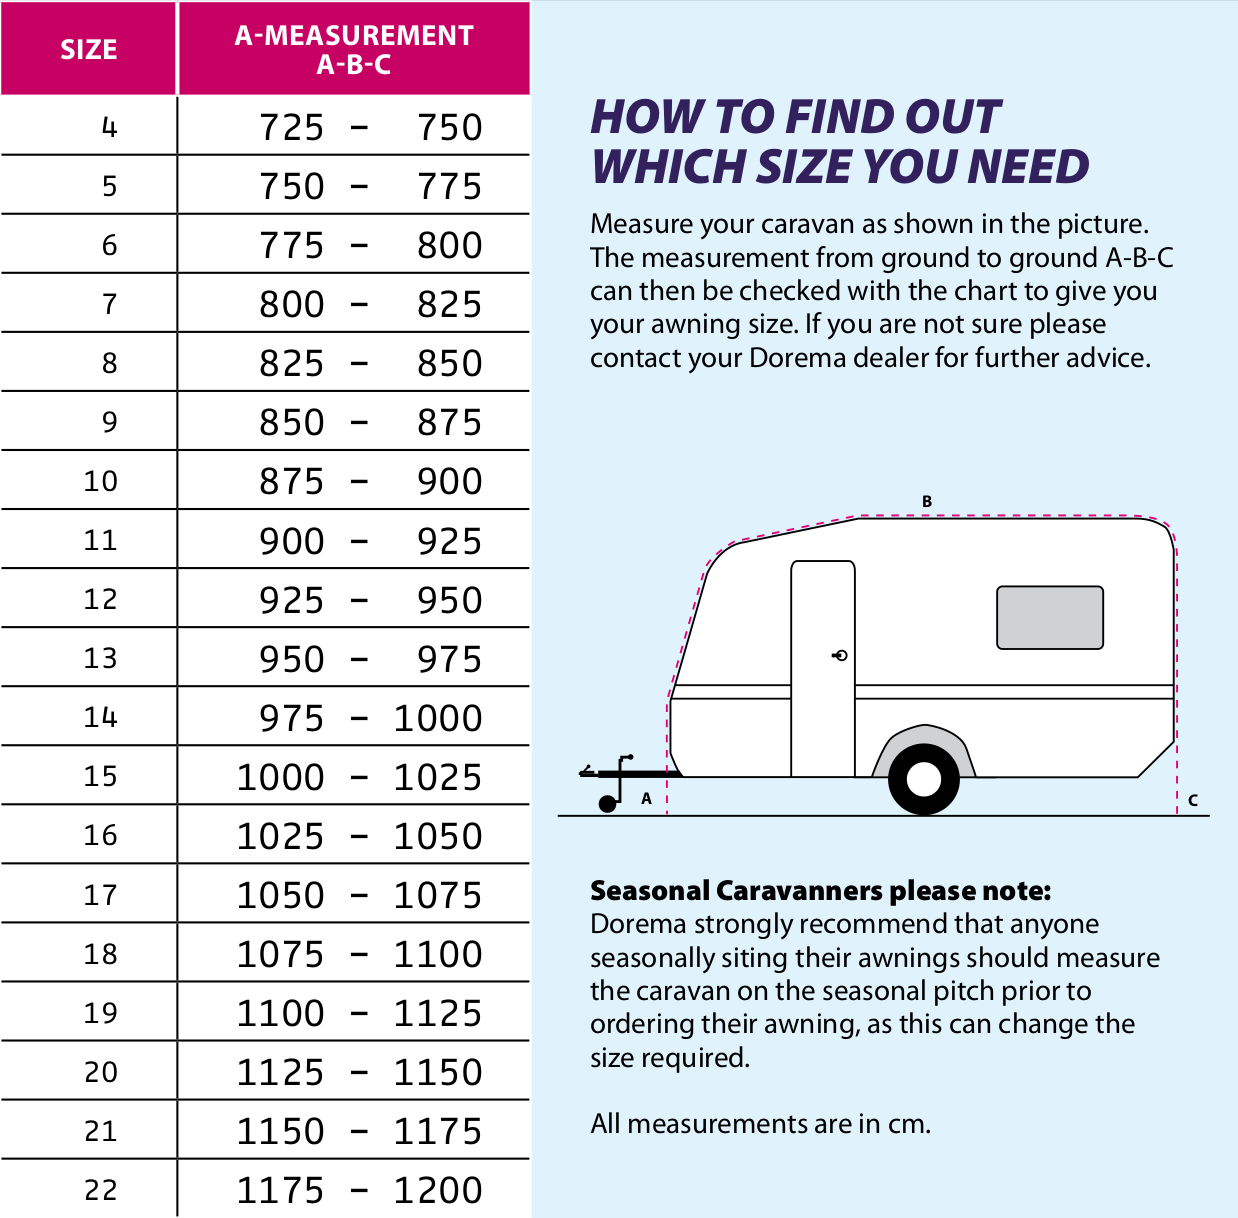 Dorema Awning Size Guide - What size do you need ...